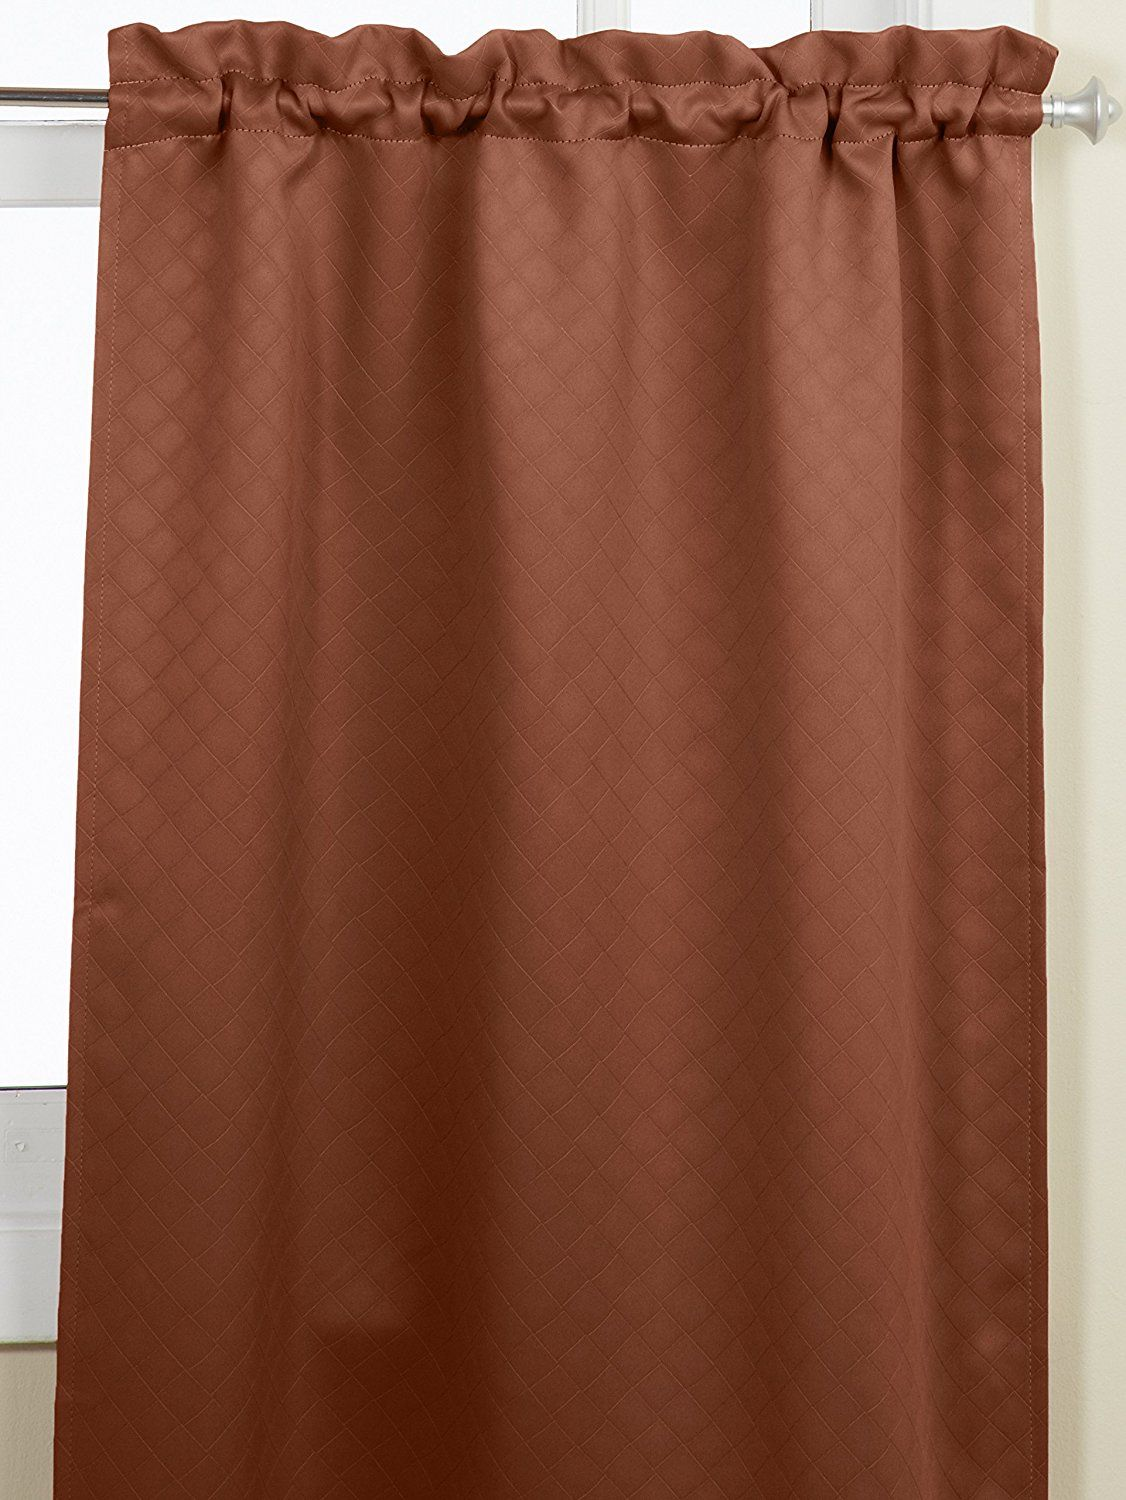 36 Inch Room Darkening Curtains Lorraine Home Fashions Facets Room Darkening Blackout Tier Curtain